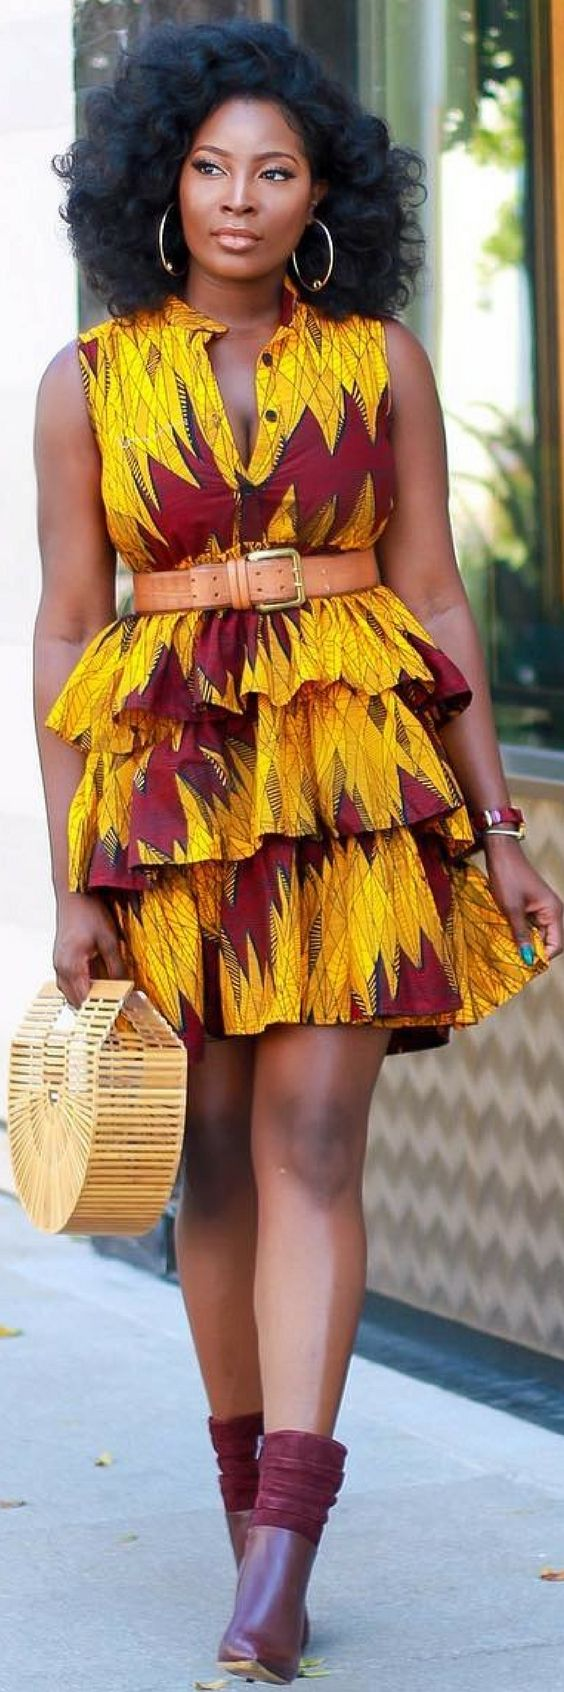 Nigerian fashion styles for women - 3 Of The Best African Print Outfits To Complete Your Wardrobe